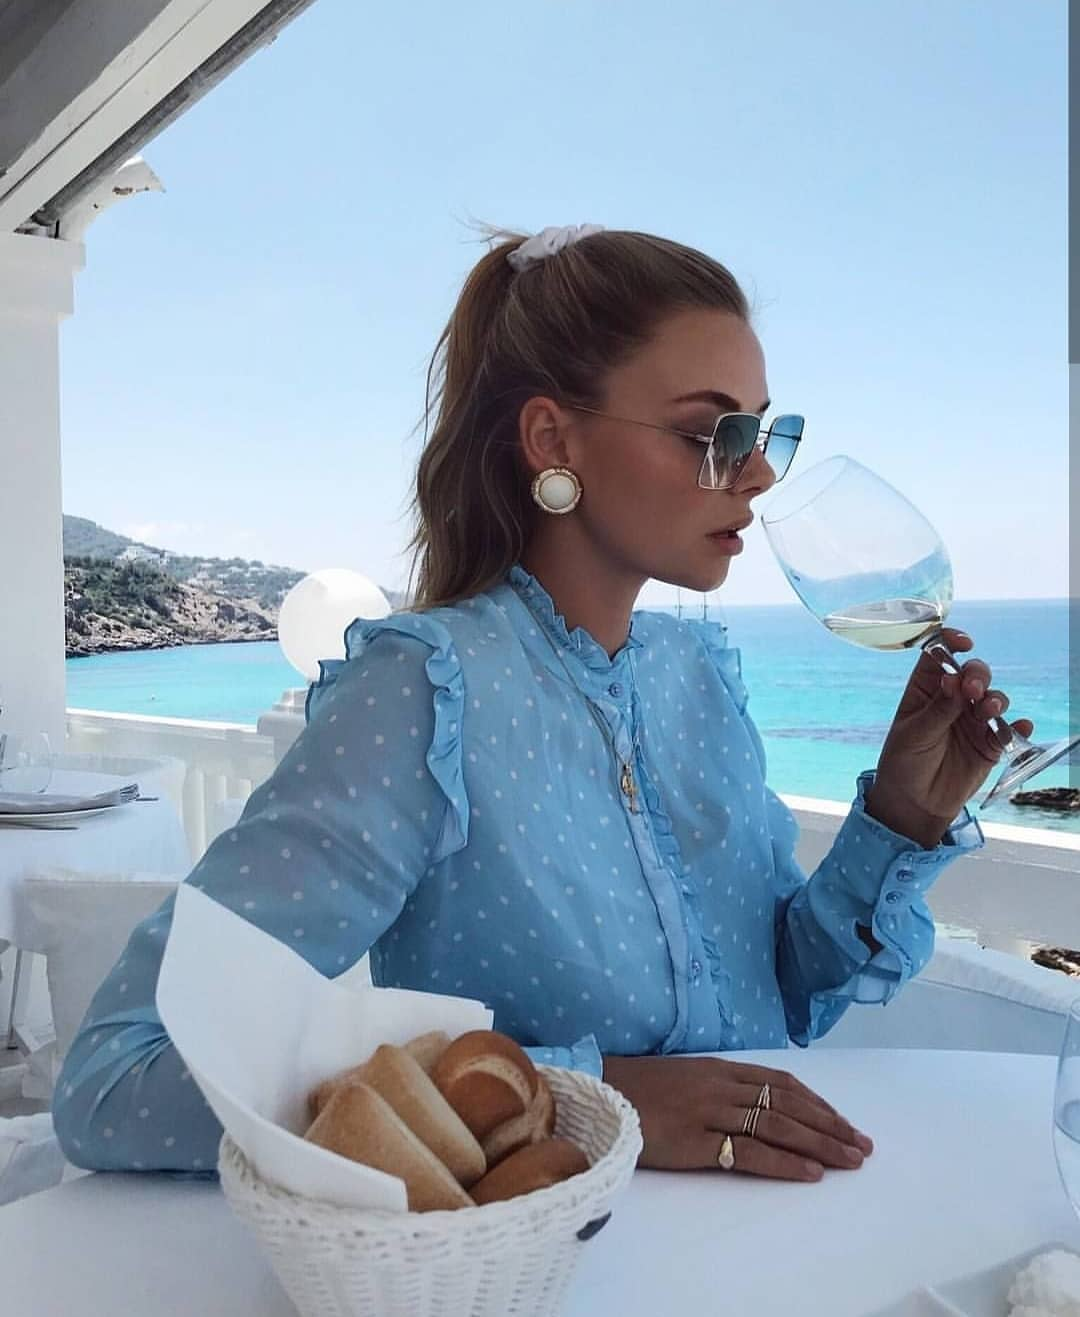 Pastel Blue Blouse In White Dots For Summer Vacation 2019